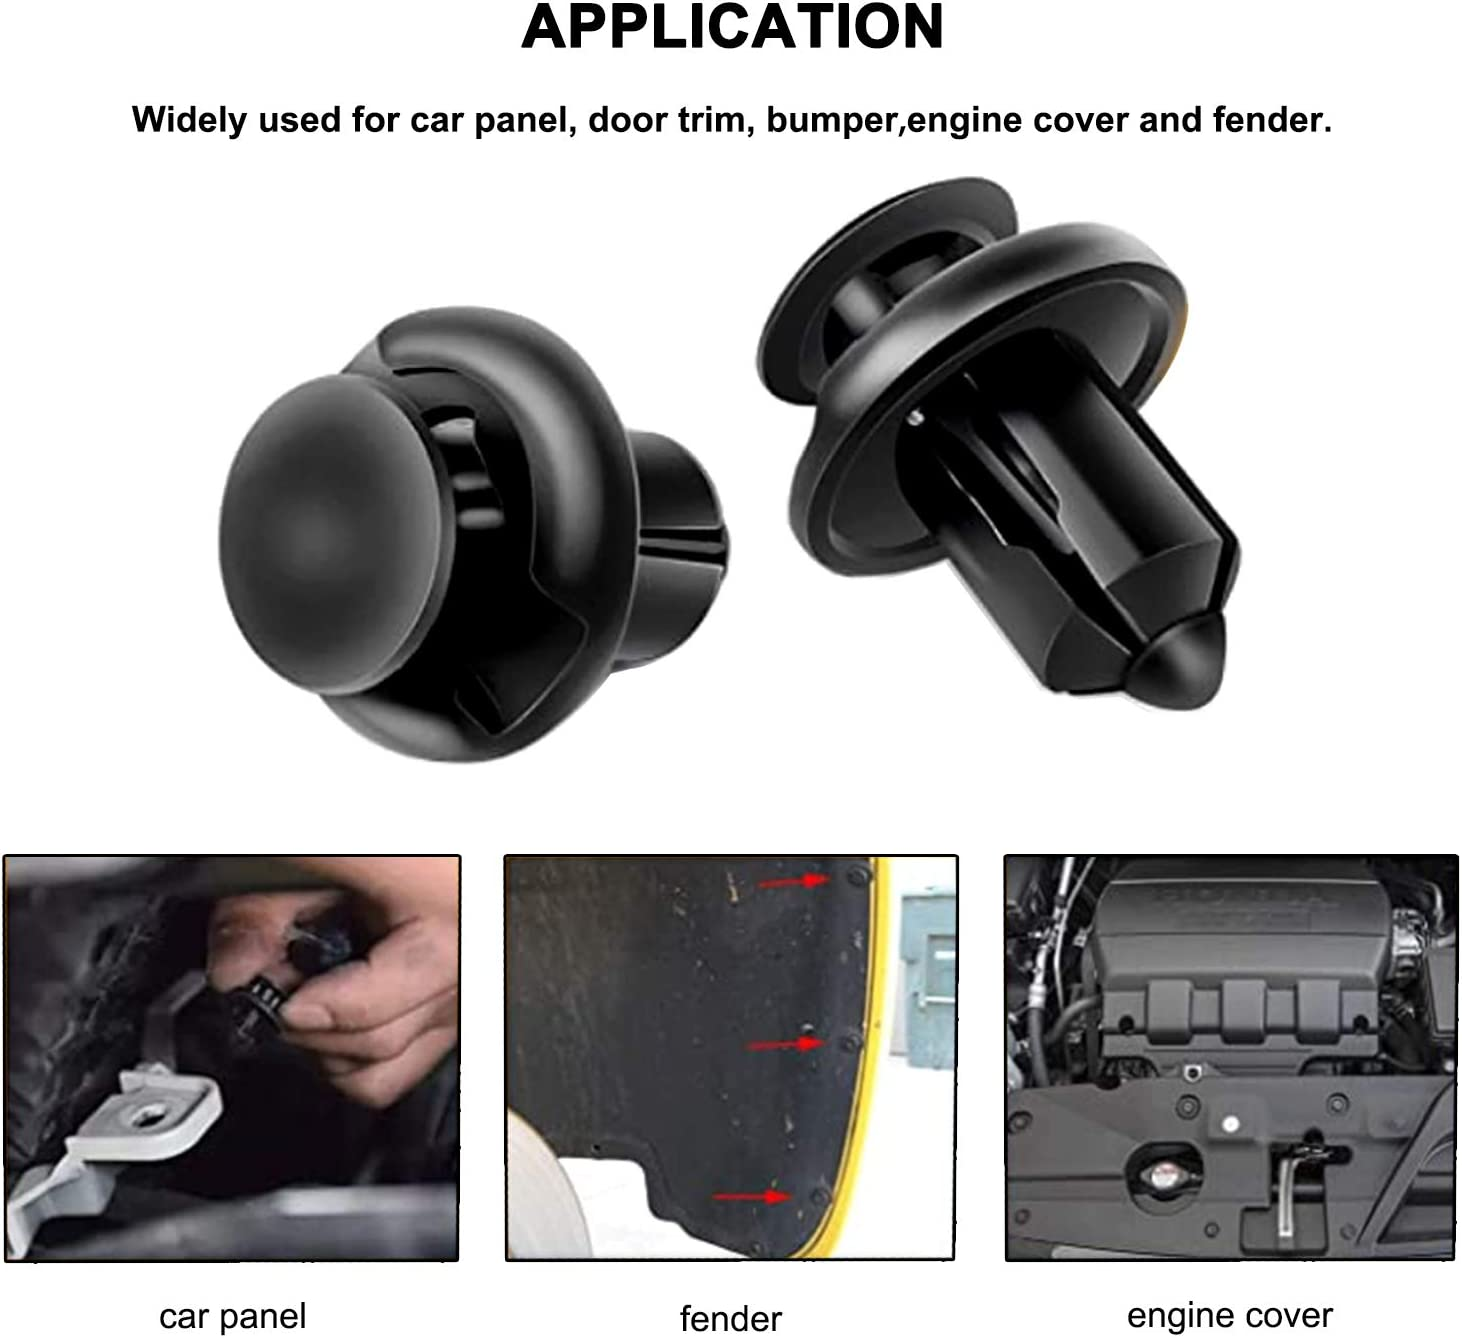 DROGO 192 PCS Car Retainer Clips Auto Push Pin Rivets Set and Fasteners Remover 12 Most Popular Sizes for Ford Toyota Honda-Black